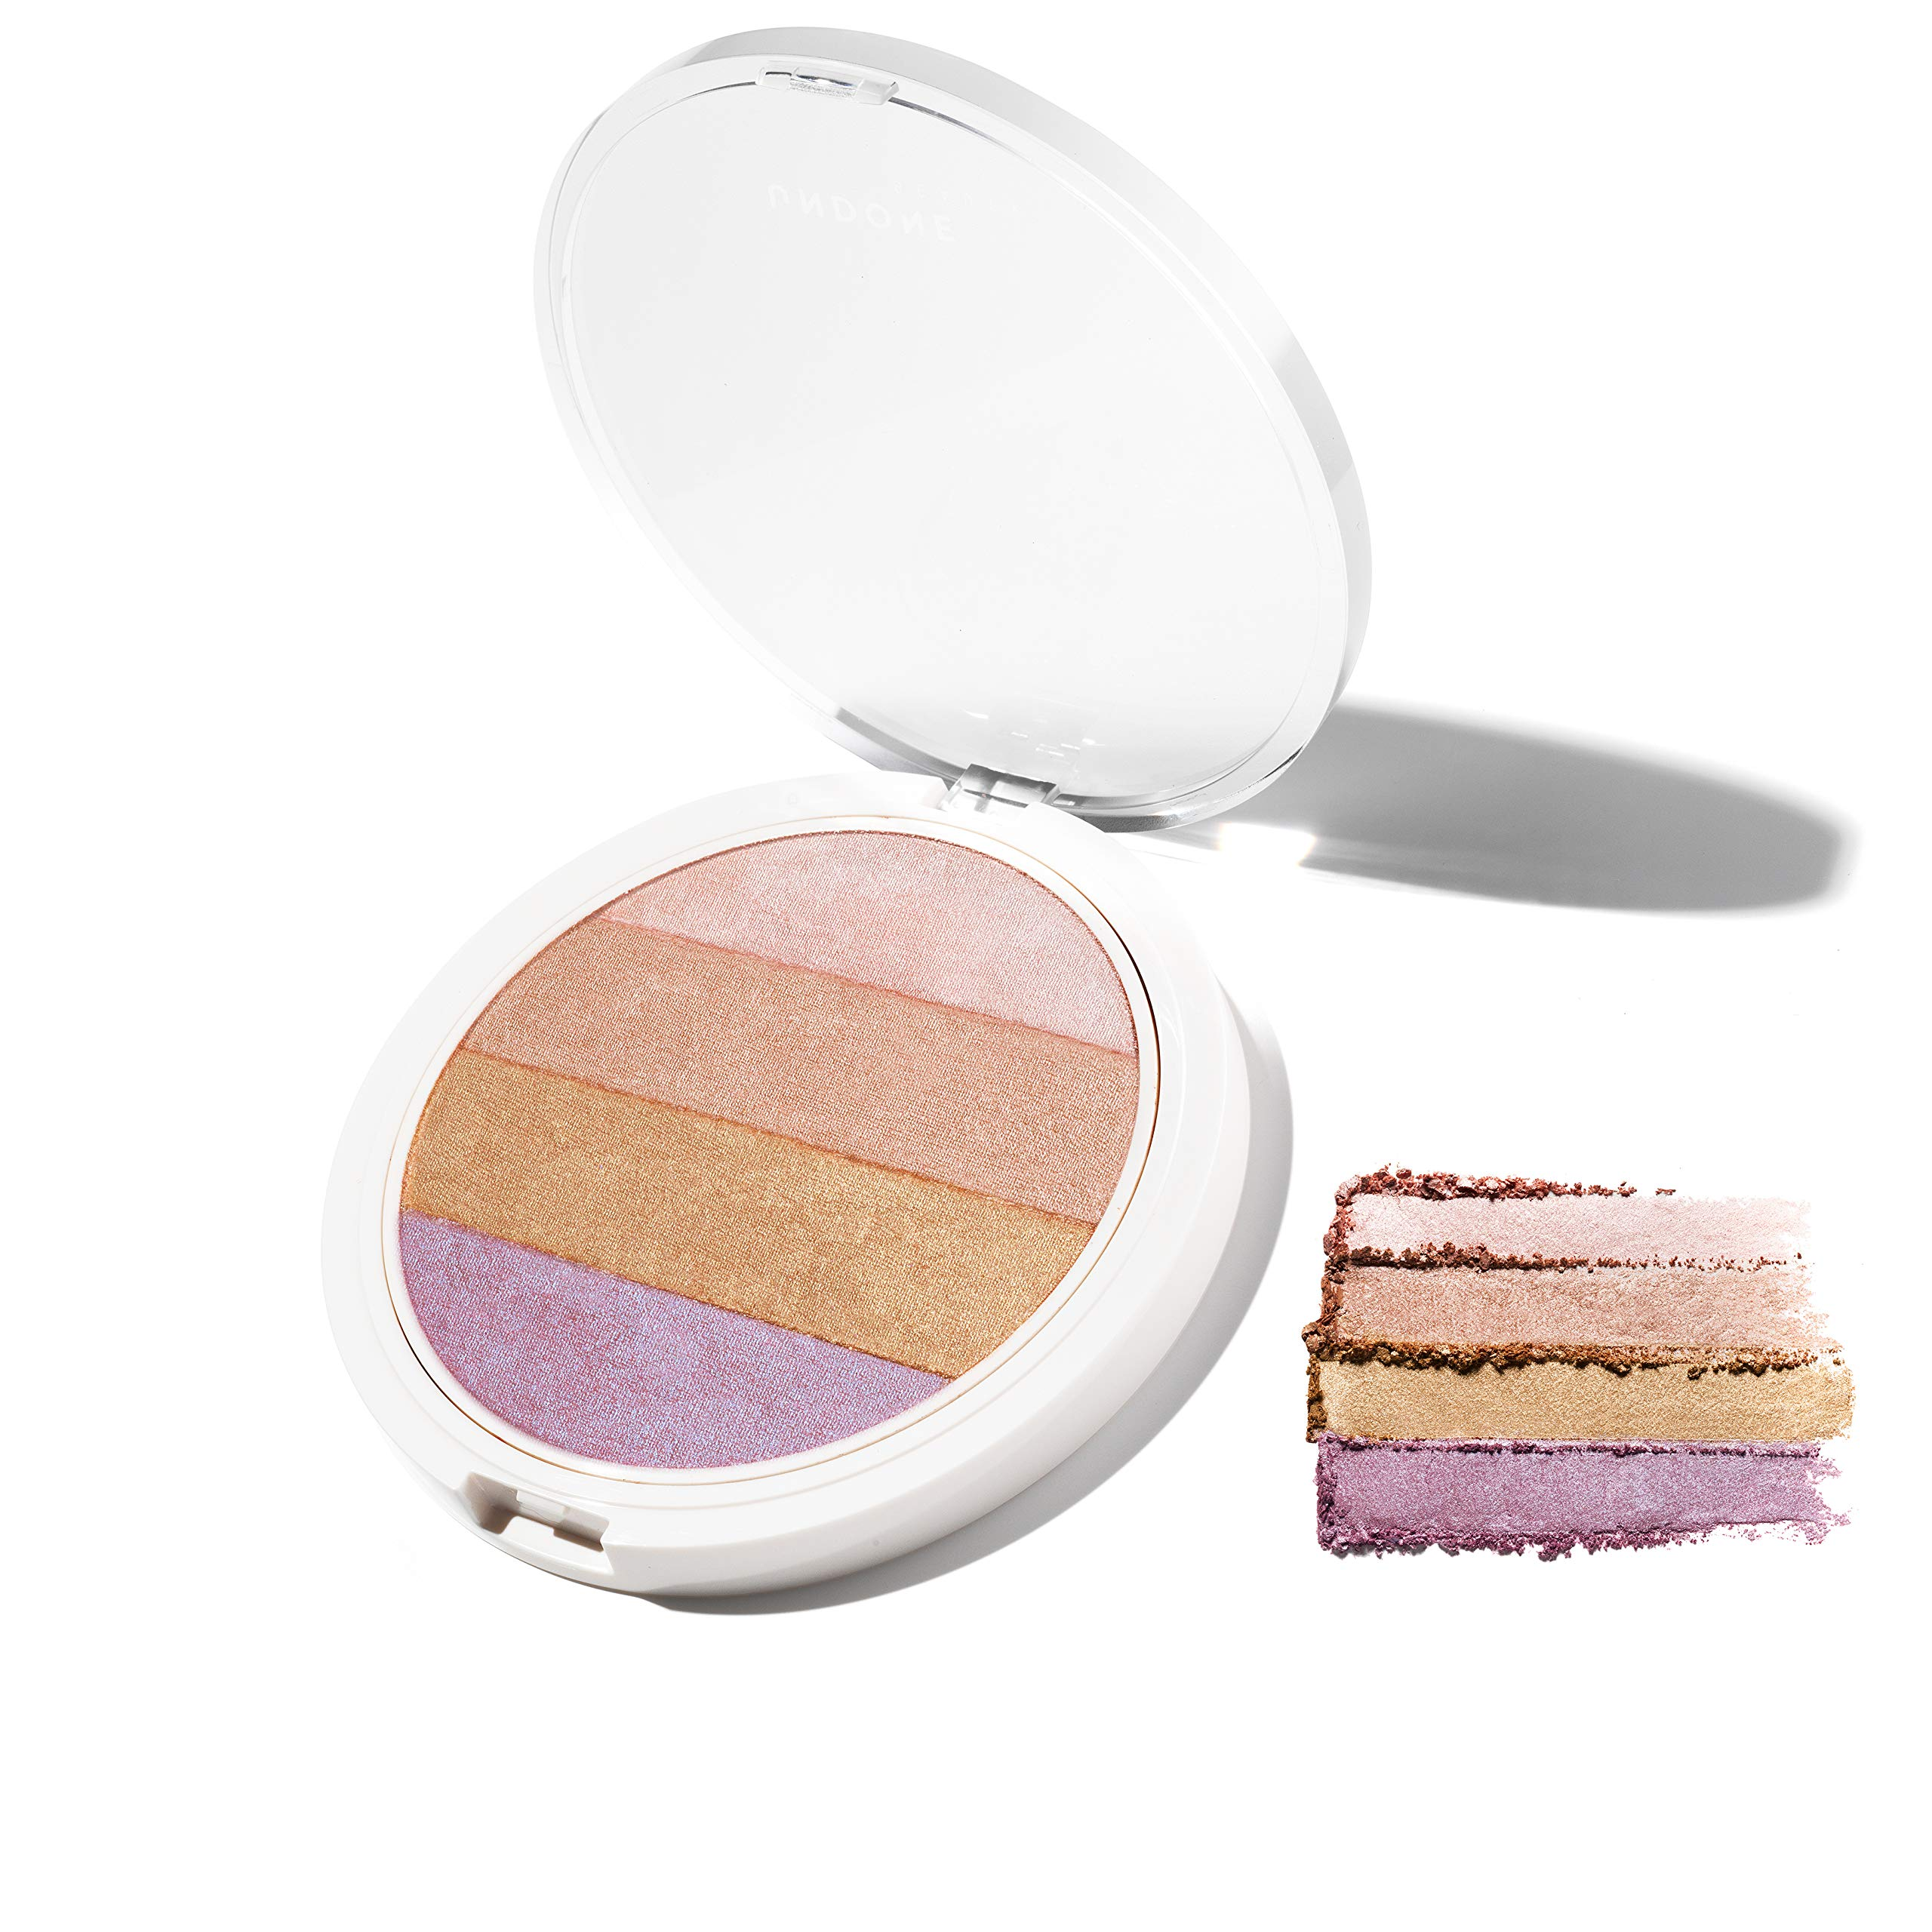 4-in-1 Highlighting Palette. Coconut Extract for Dewy, Radiant Glow – UNDONE BEAUTY Nonzer. Blendable Powder for Highlighting, Contouring & Strobing for Face & Body. Vegan & Cruelty Free. 4-IN-1